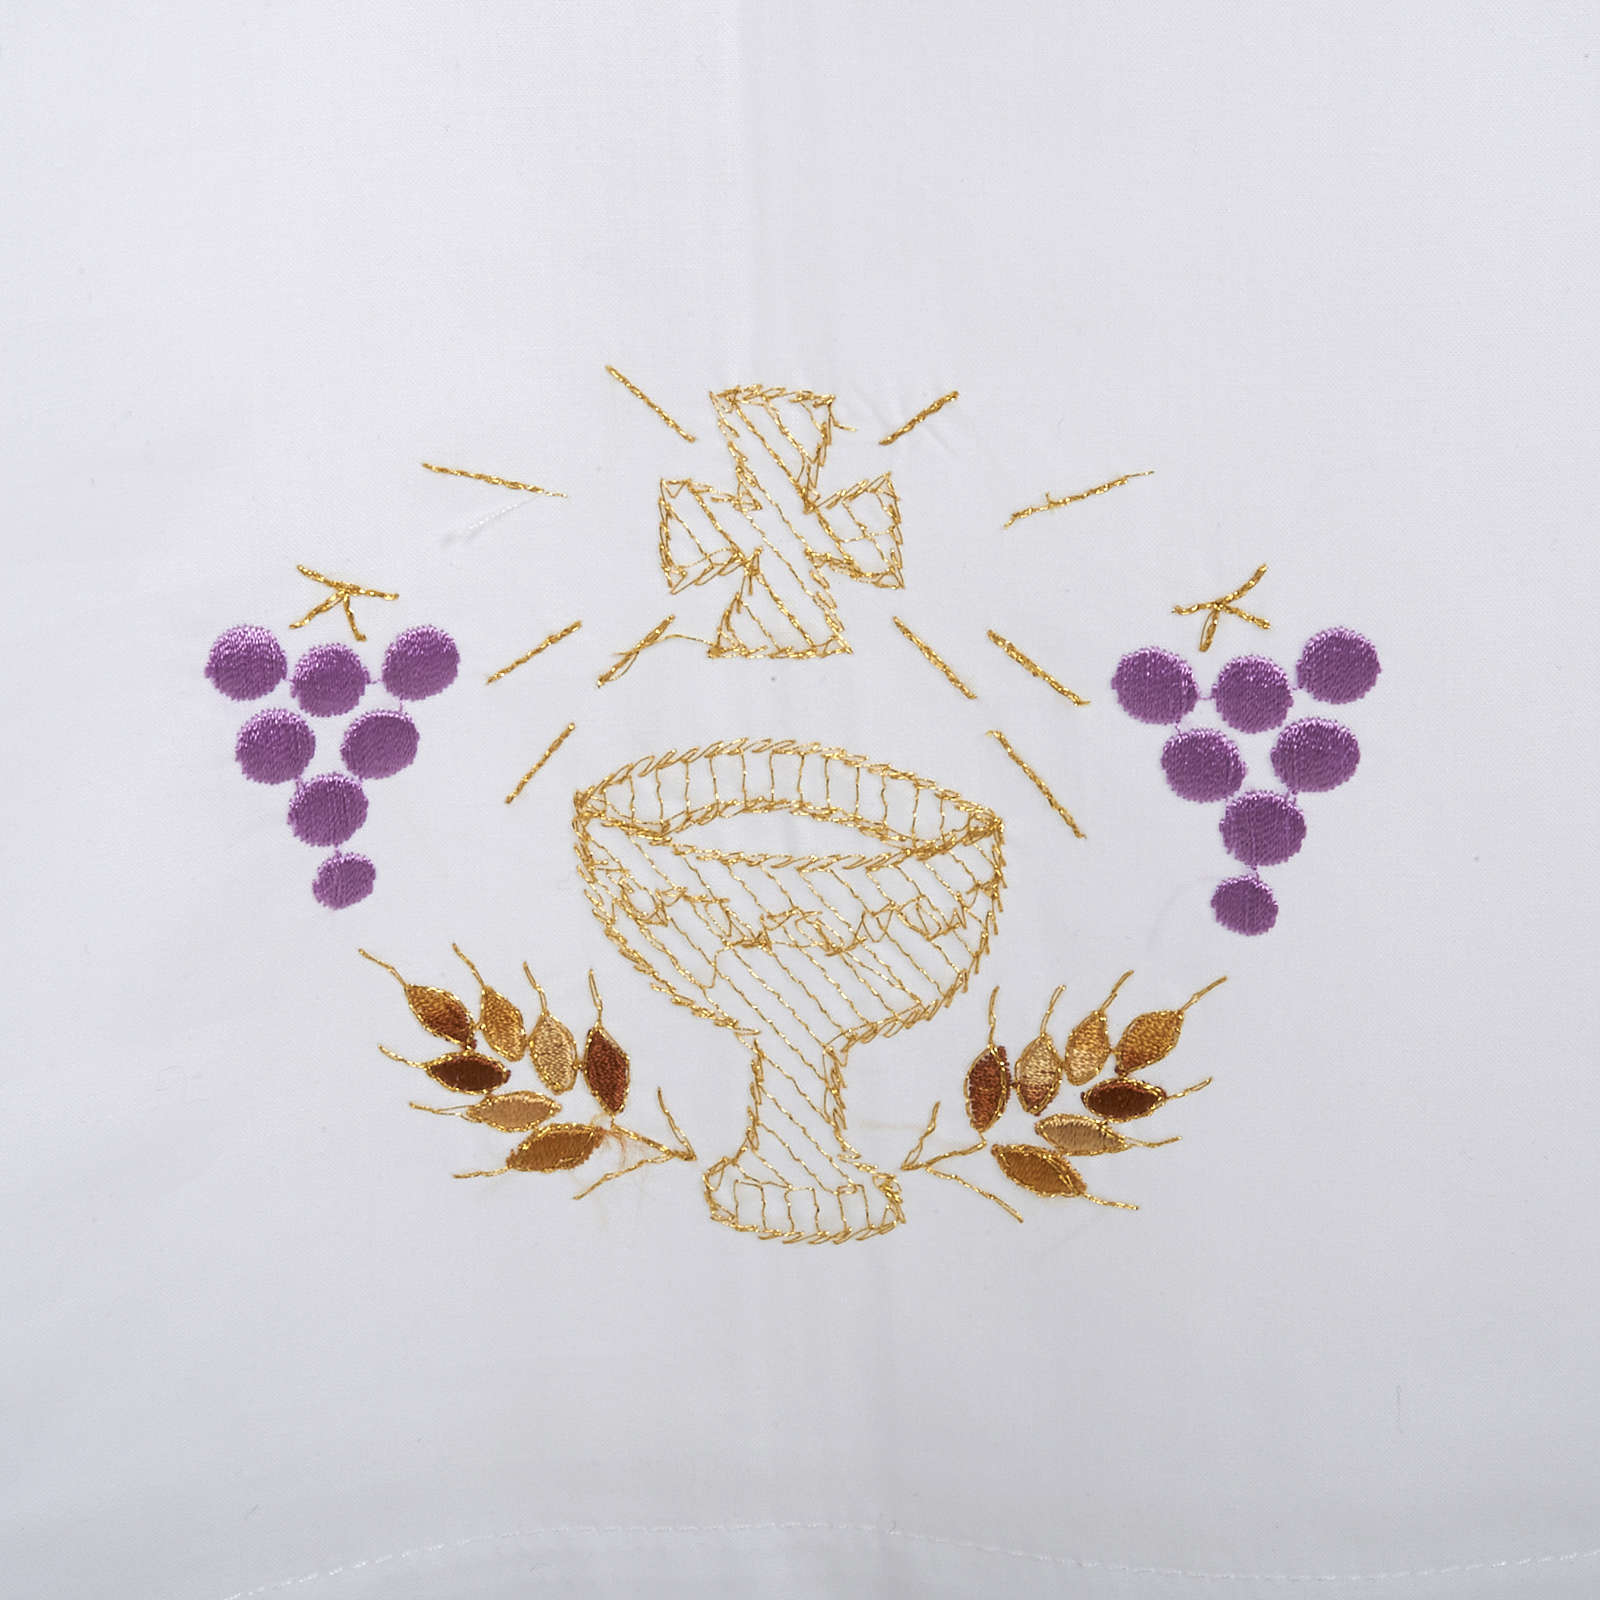 White alb in wool, chalice, grapes, earis of wheat 4